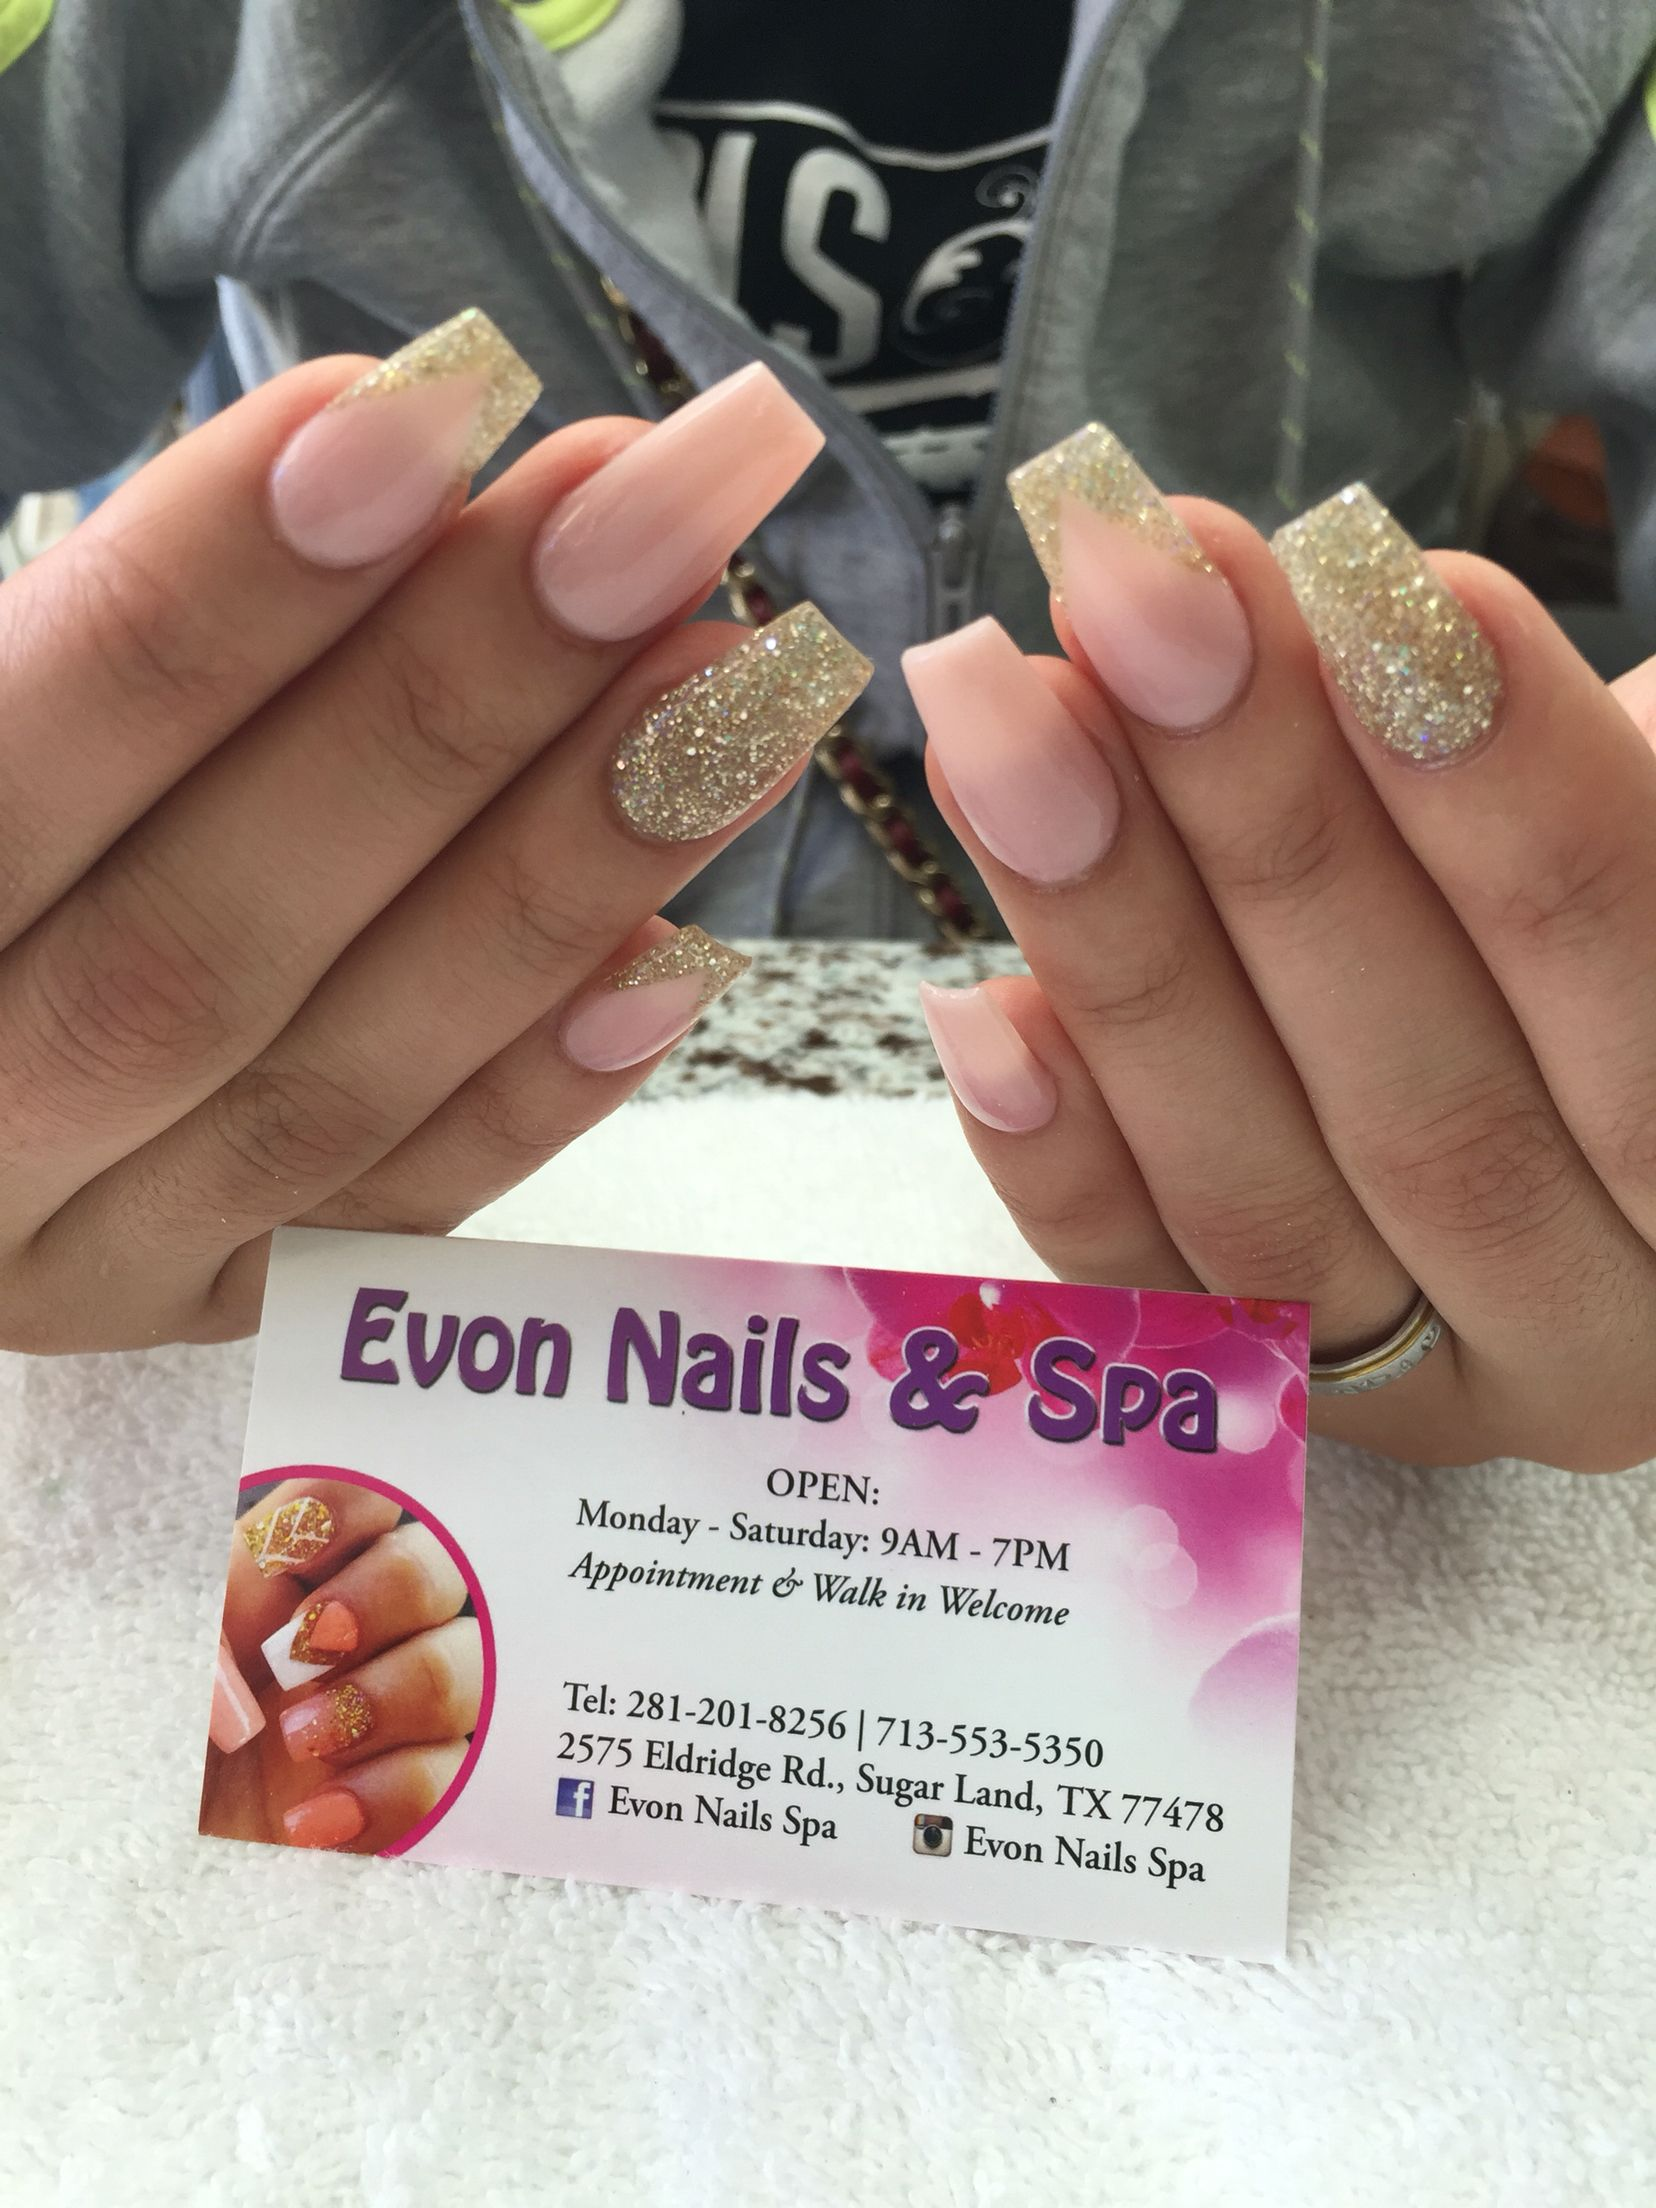 Progressive Color Nails and Spa Information - Totaltravel.US